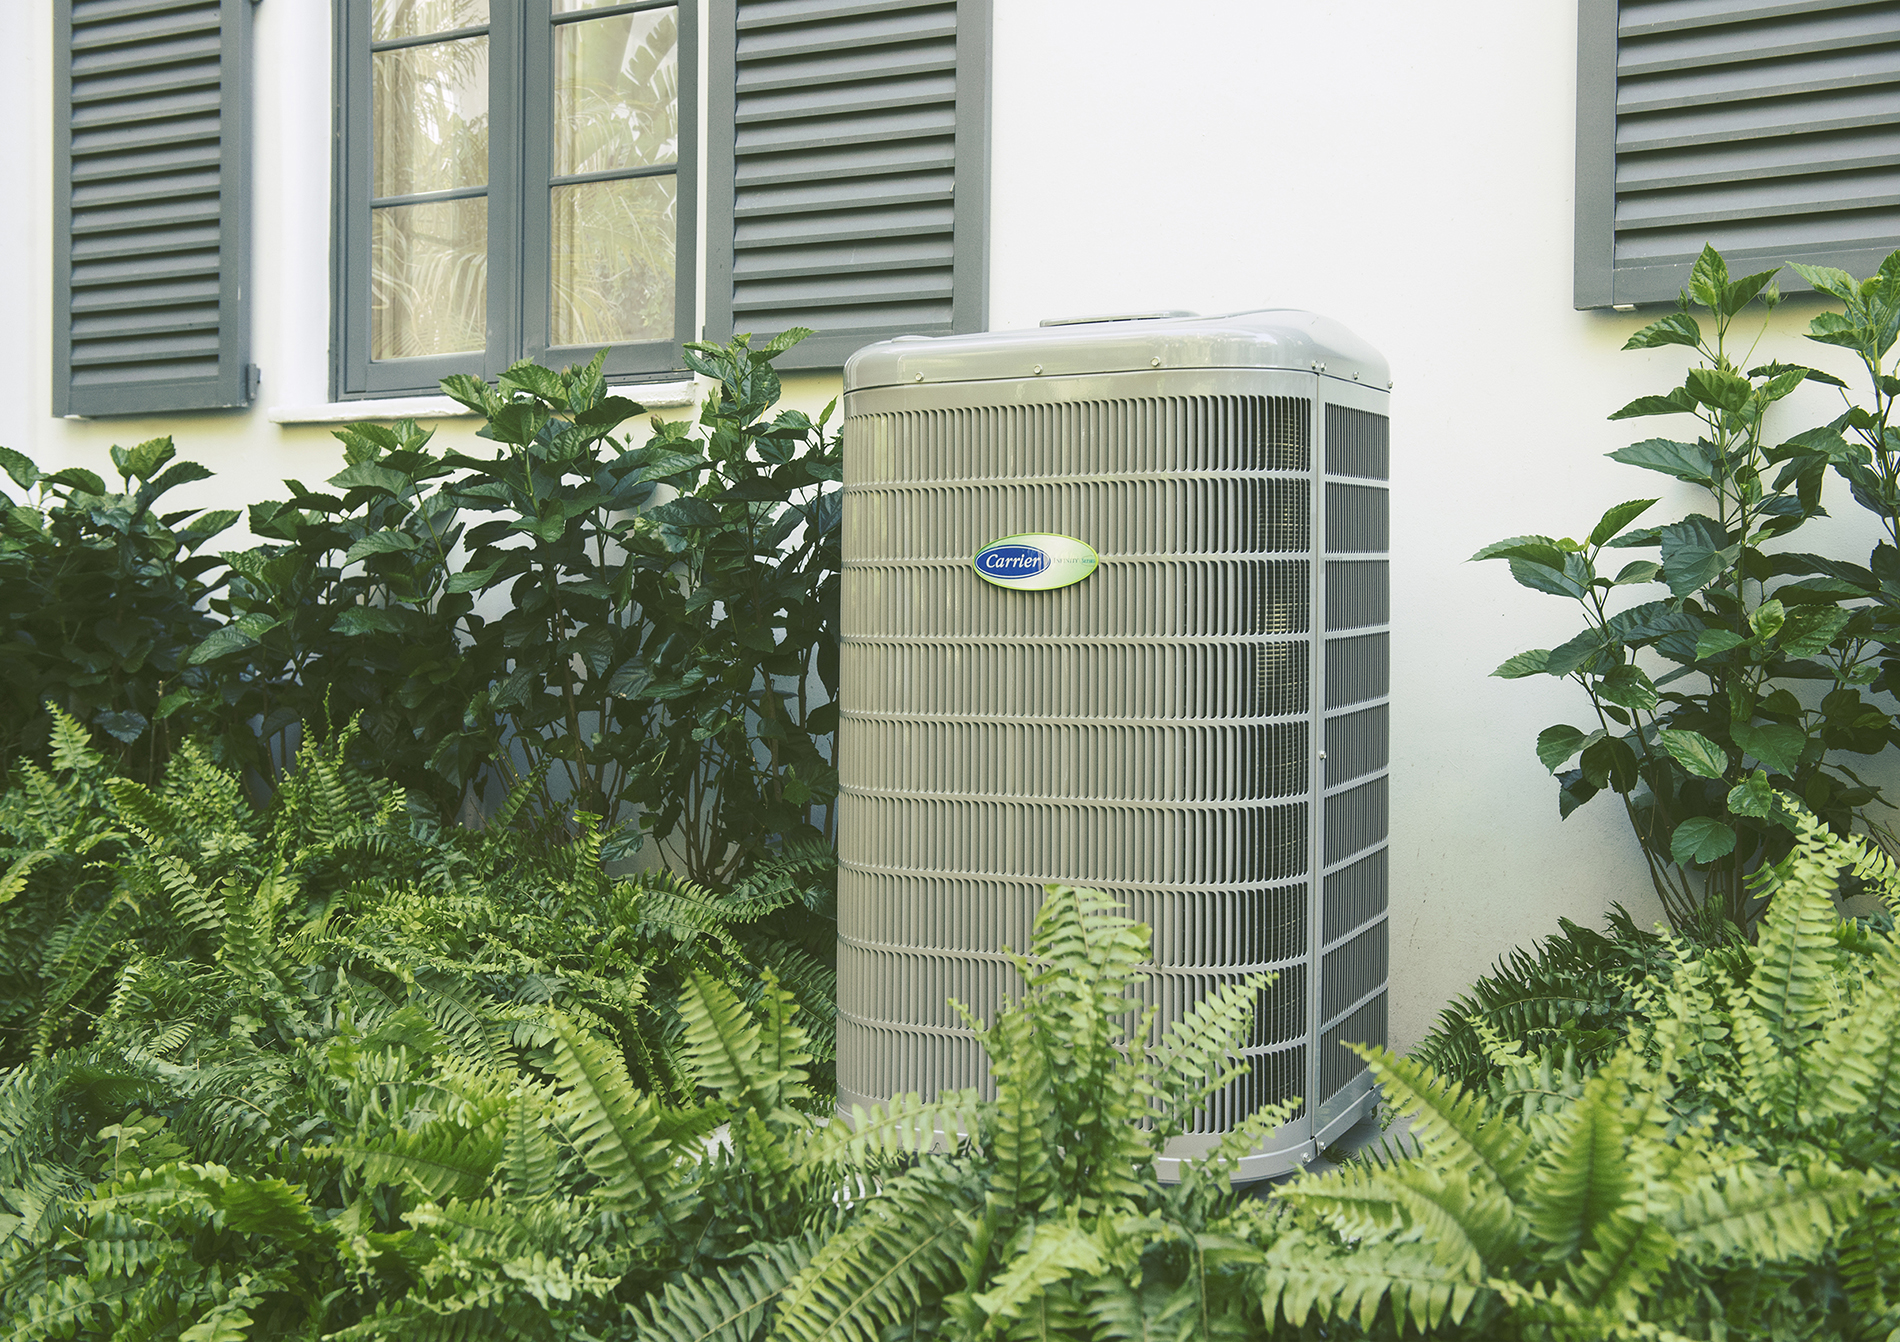 Genove Oil and Air provides customers with Complete Cooling Services; Installation of Central Air Conditioning, Ductless AC and Condenser Unit replacement.